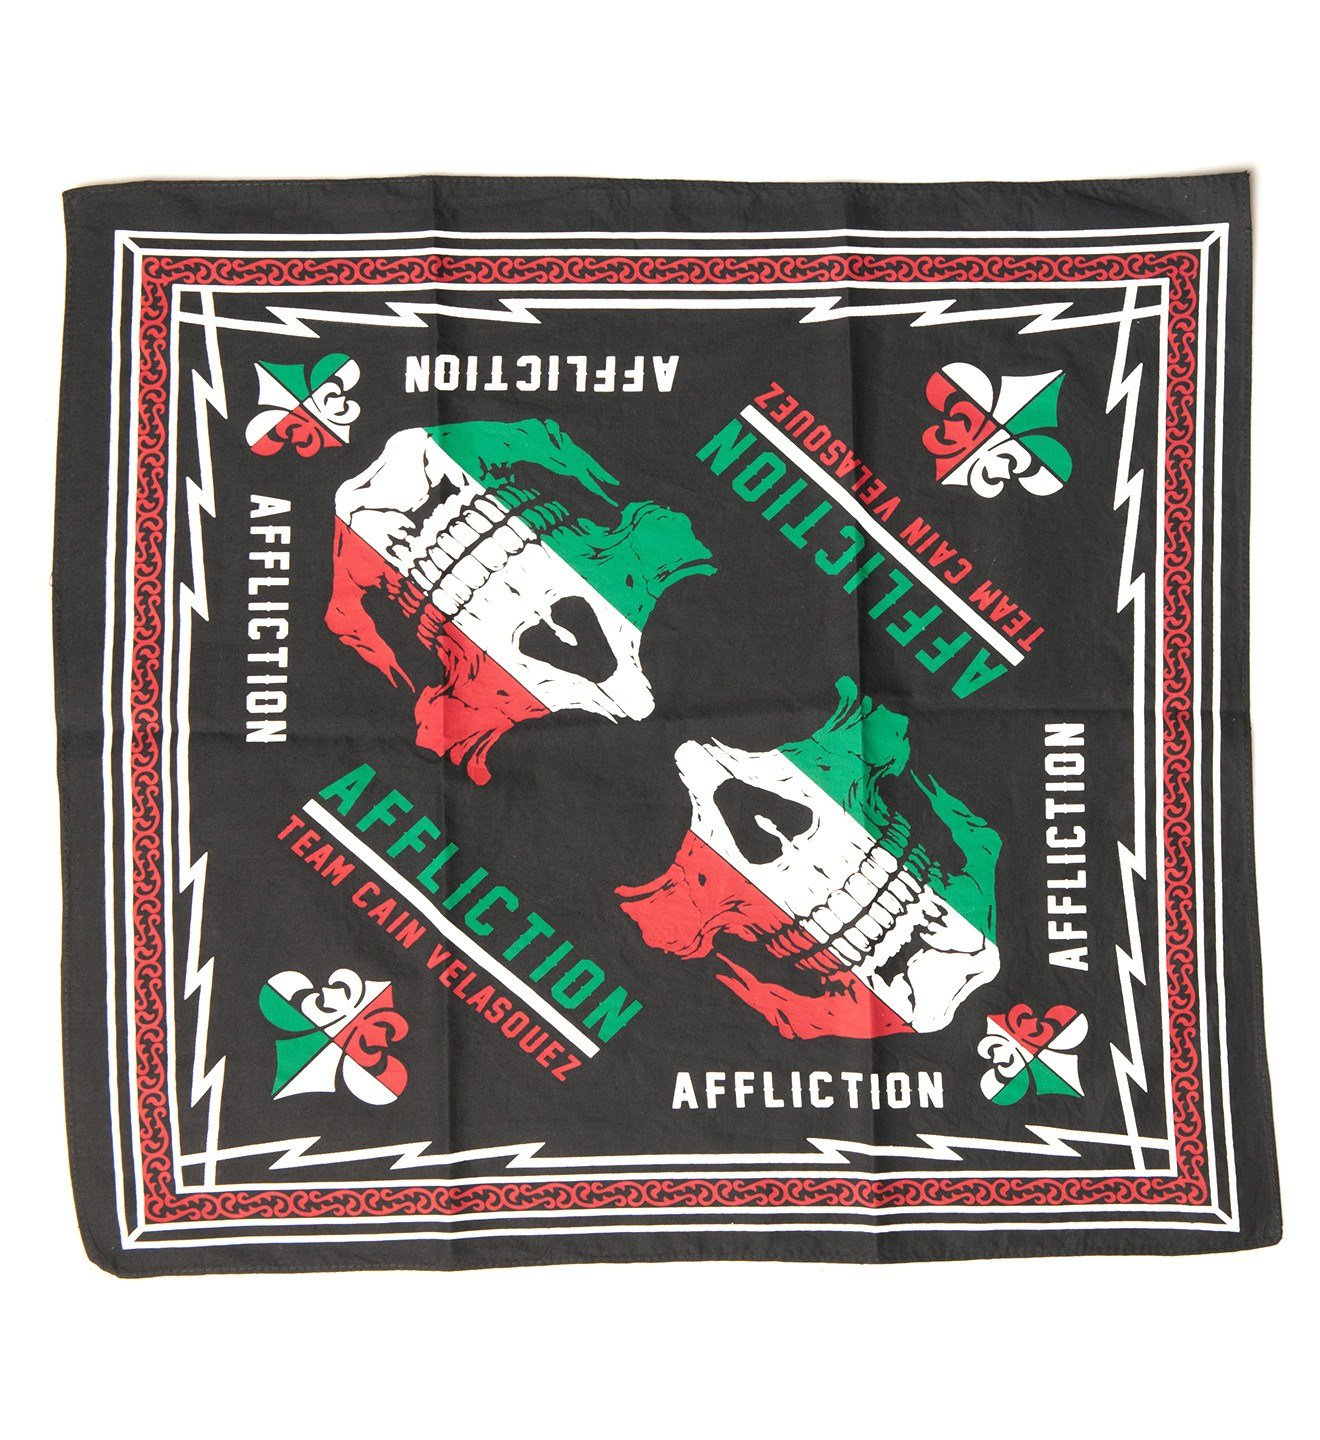 Revolutionary Bandana - Mens Other Accessories - Affliction Clothing